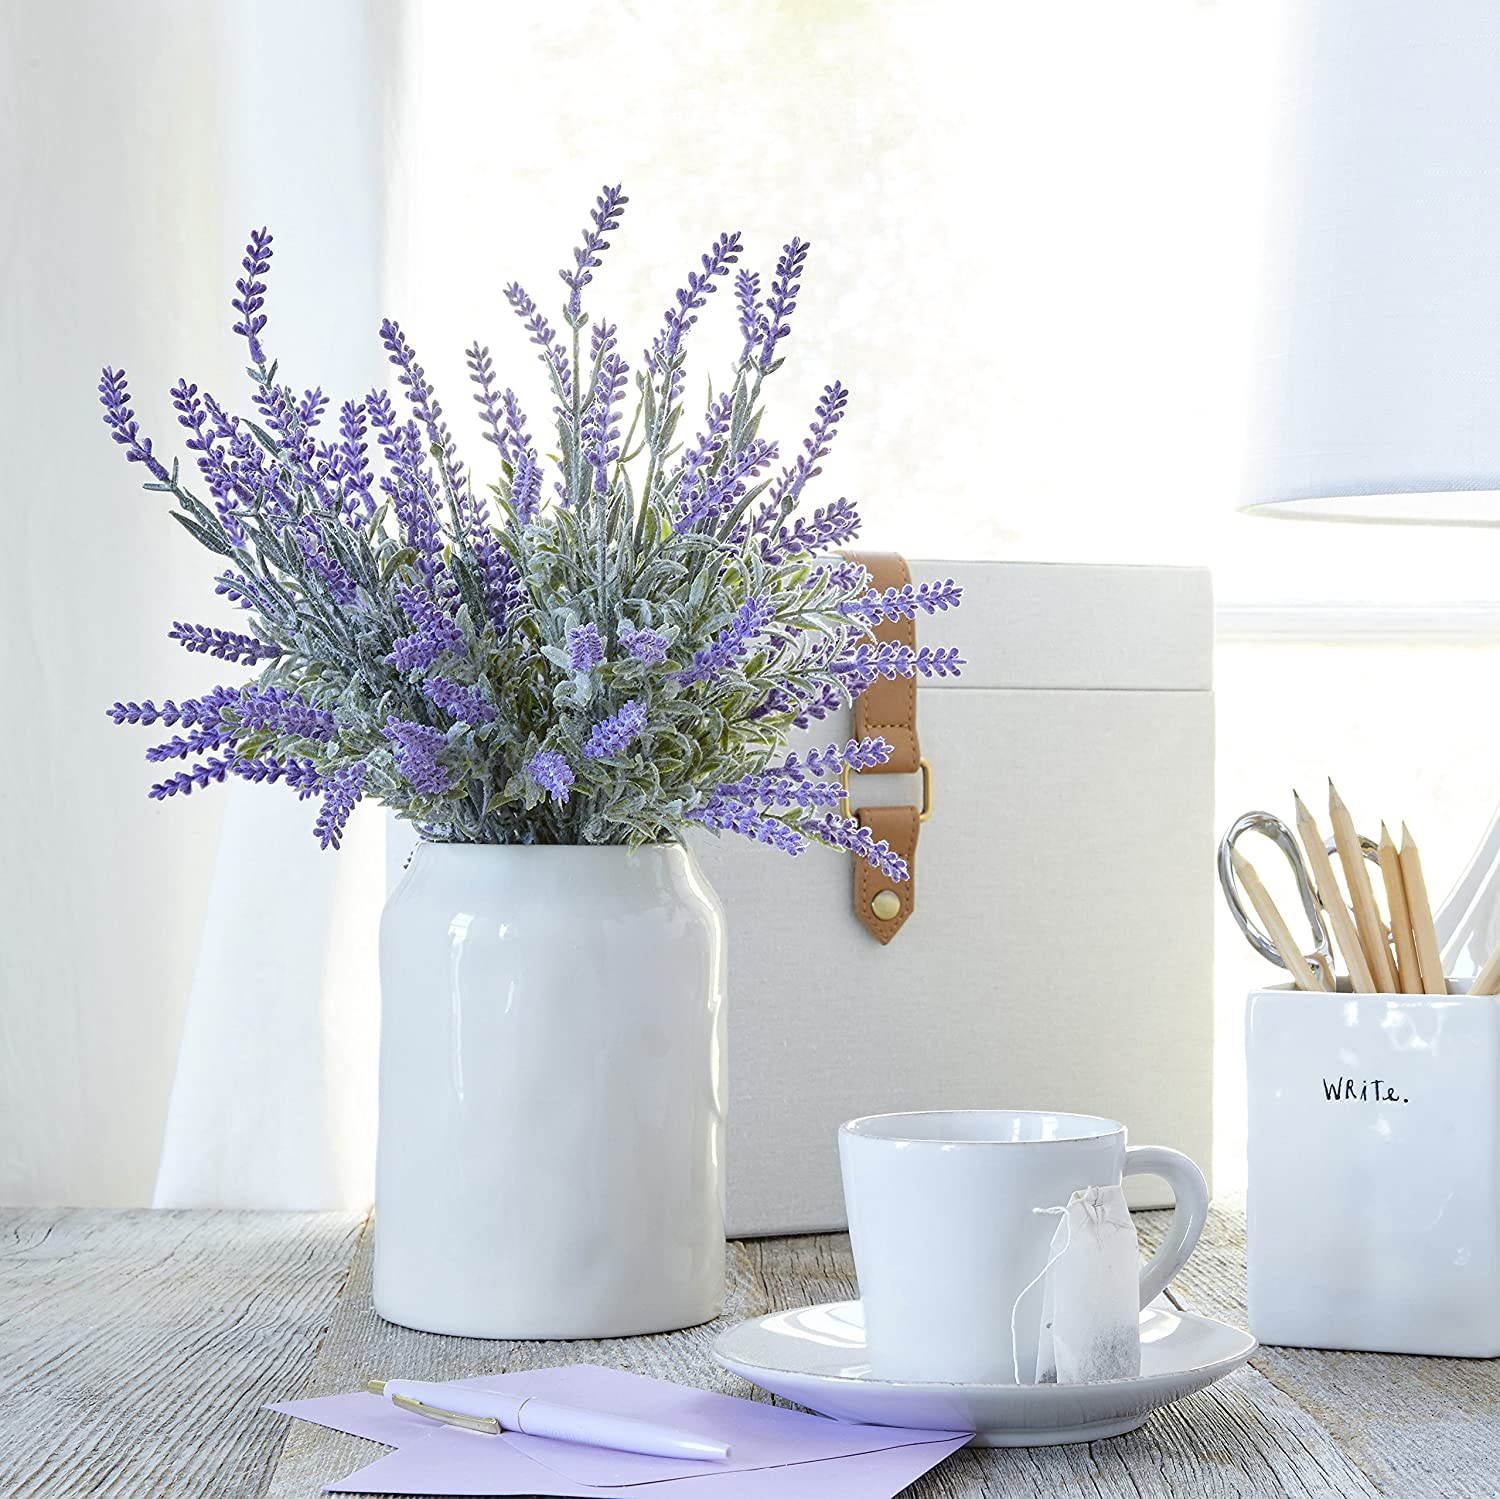 Amazon.com: Butterfly Craze Artificial Lavender Plant with Silk ...